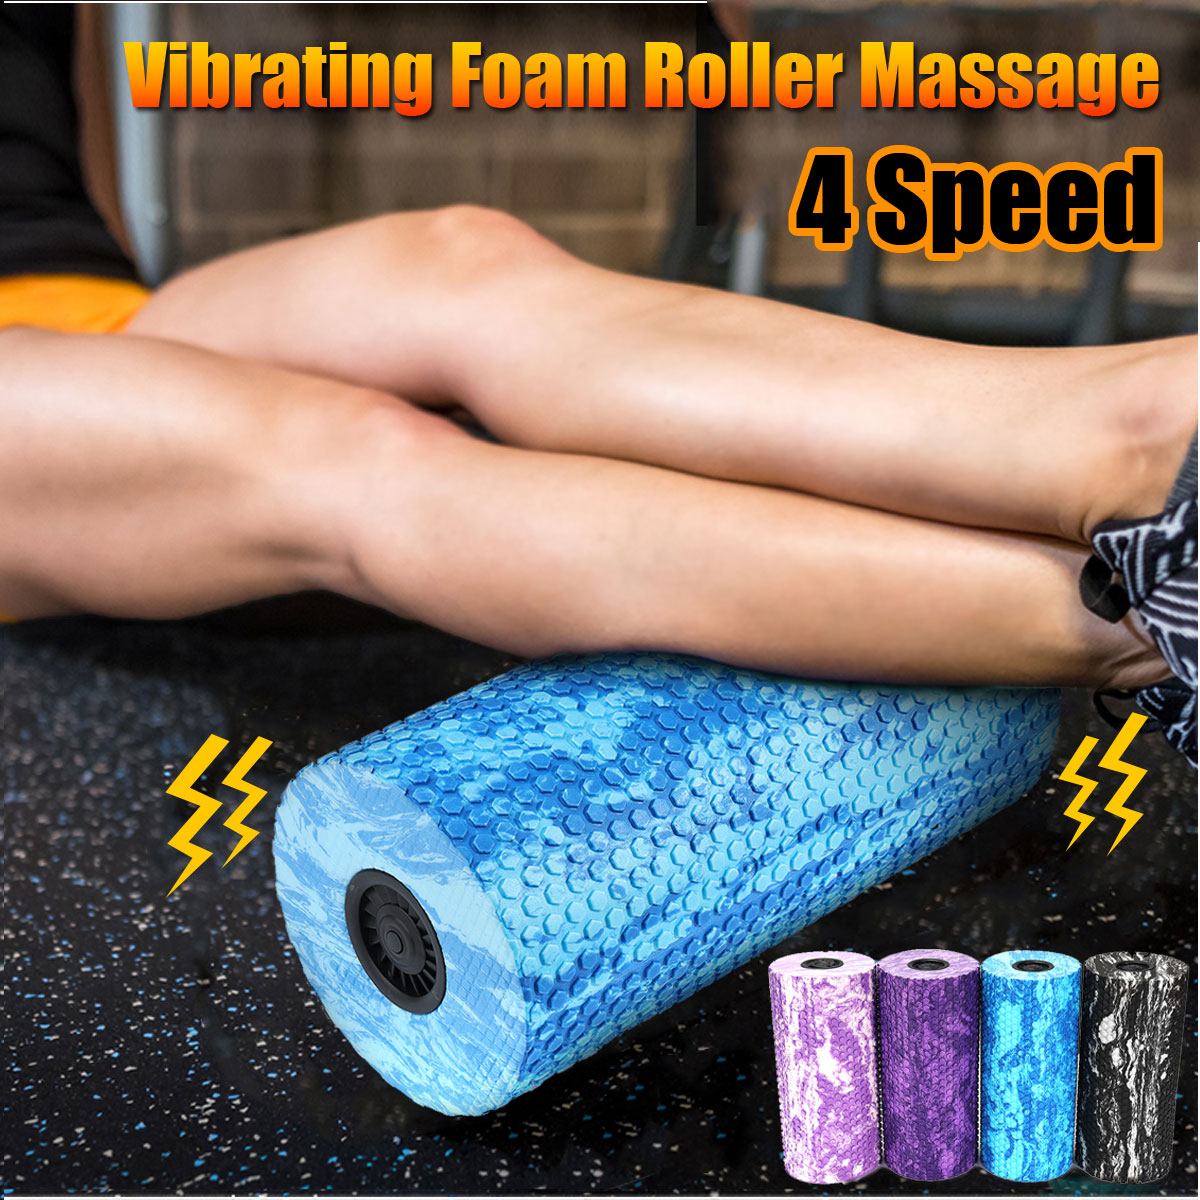 EVA Yoga Pilates Home Gym Vibrating Foam Roller Massage